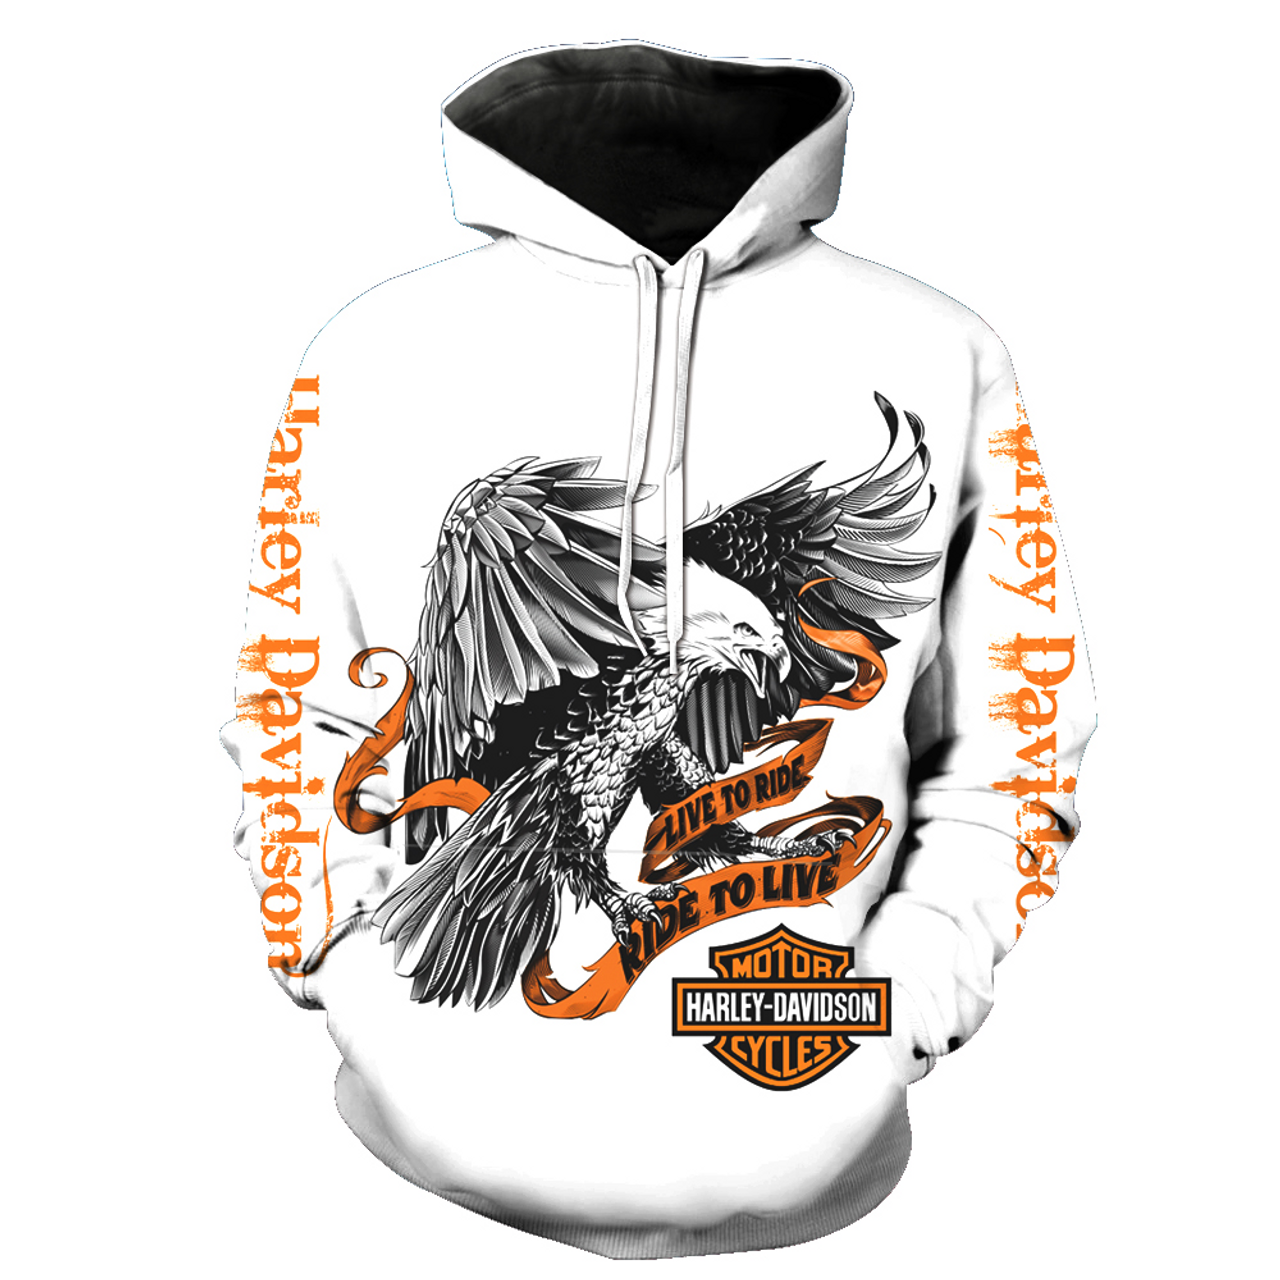 **(NEW-MENS & WOMENS-OFFICIAL-3-D-GRAPHIC-PRINTED-HARLEY-HOODIE,IN-WHITE/HARLEY-DAVIDSON-EAGLE & LIVE-TO-RIDE/RIDE-TO-LIVE & HARLEY-EMBLEM,NICE-DETAILED-CUSTOM-GRAPHIC-PRINTED/PREMIUM-FULL-DOUBLE-SIDED-PULLOVER-HOODIES)**